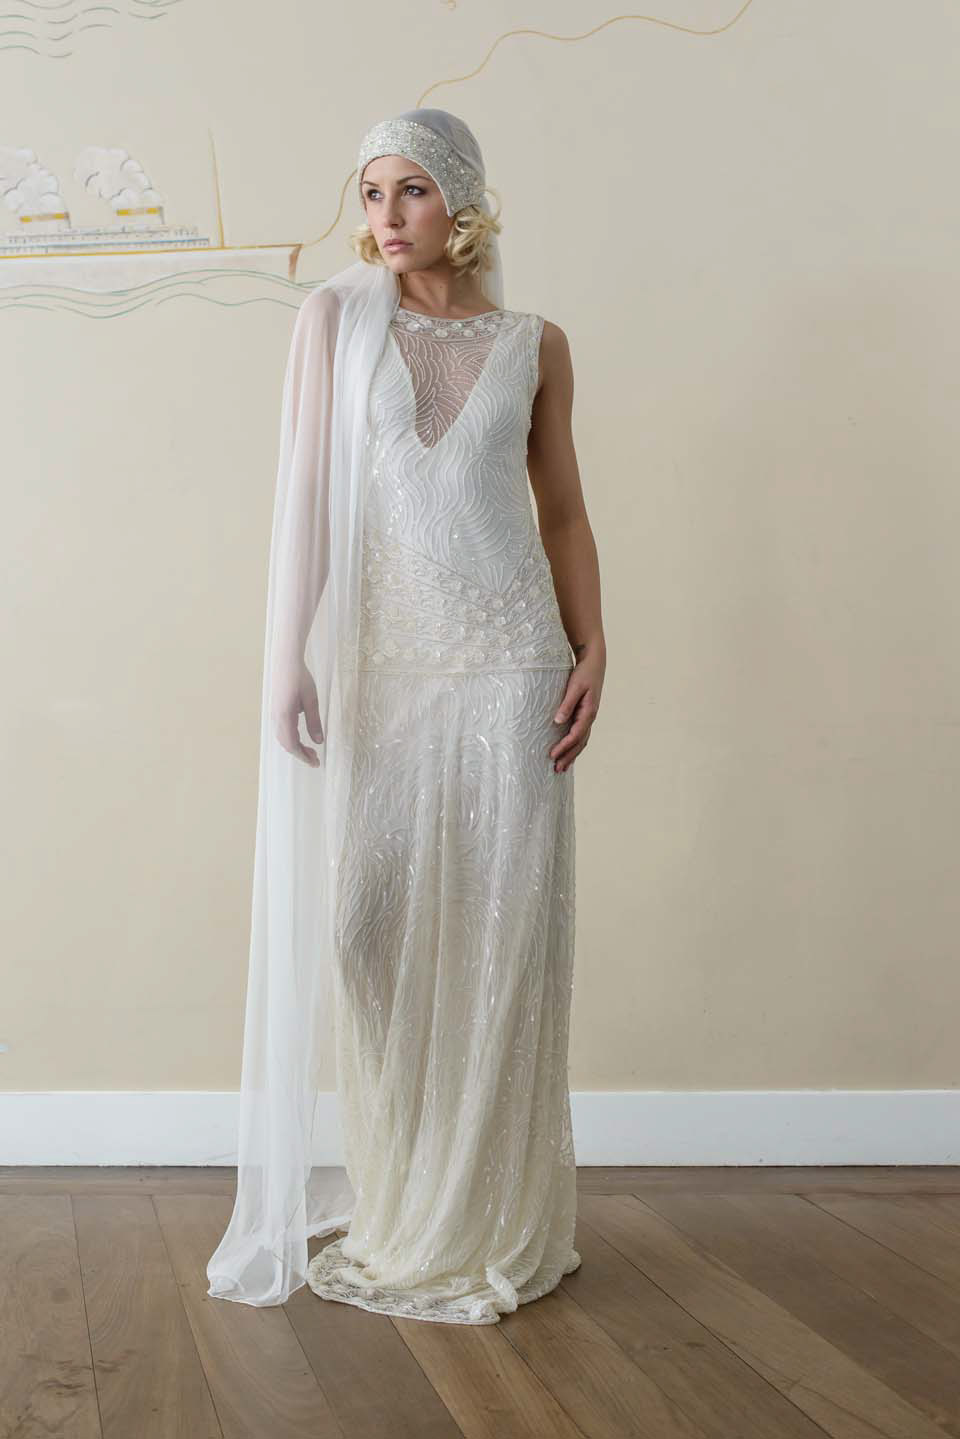 3 wedding dresses Vicky Rowe A Debut Collection of s and s Inspired Heirloom Style Wedding Dresses